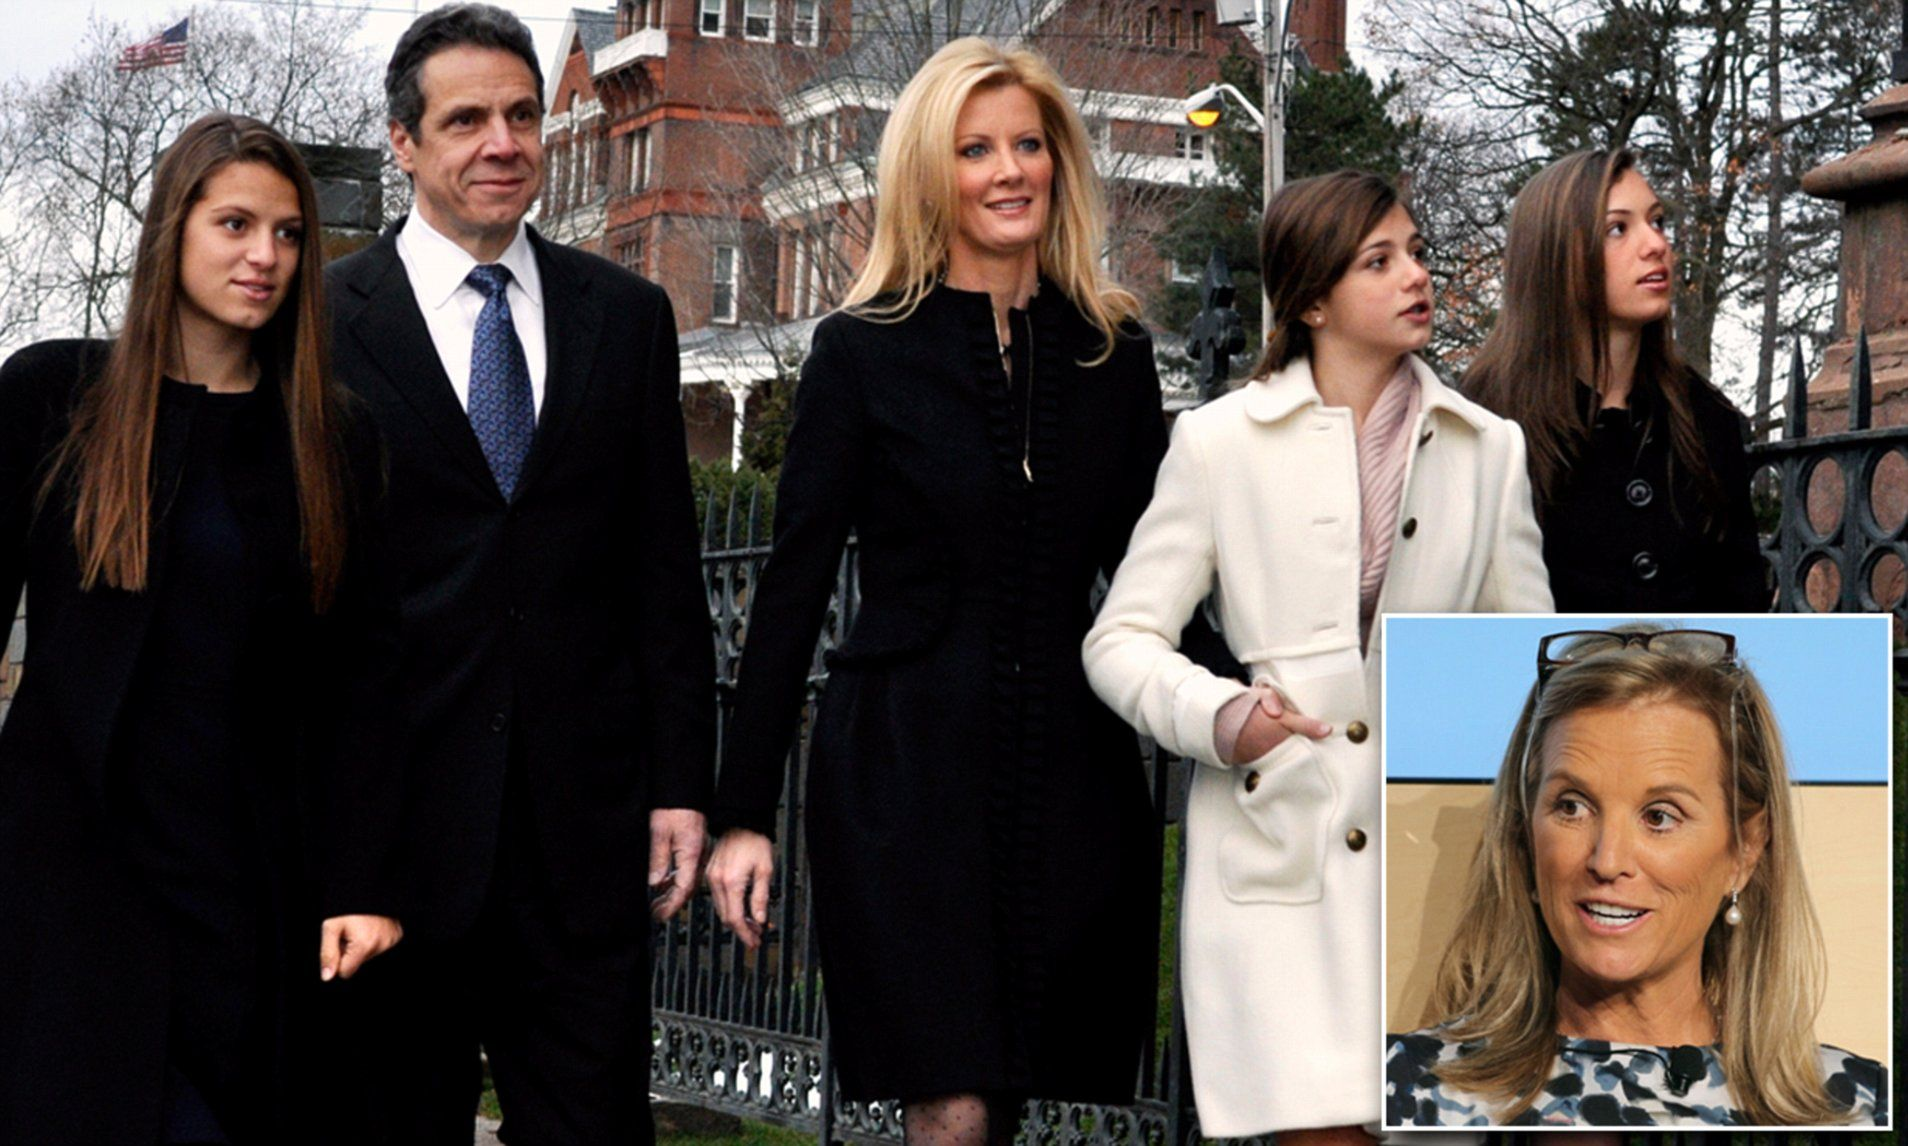 New York Governor Andrew Cuomo Never Paid Fair Share While Married In 2020 Andrew Cuomo Kennedy Family Andrew